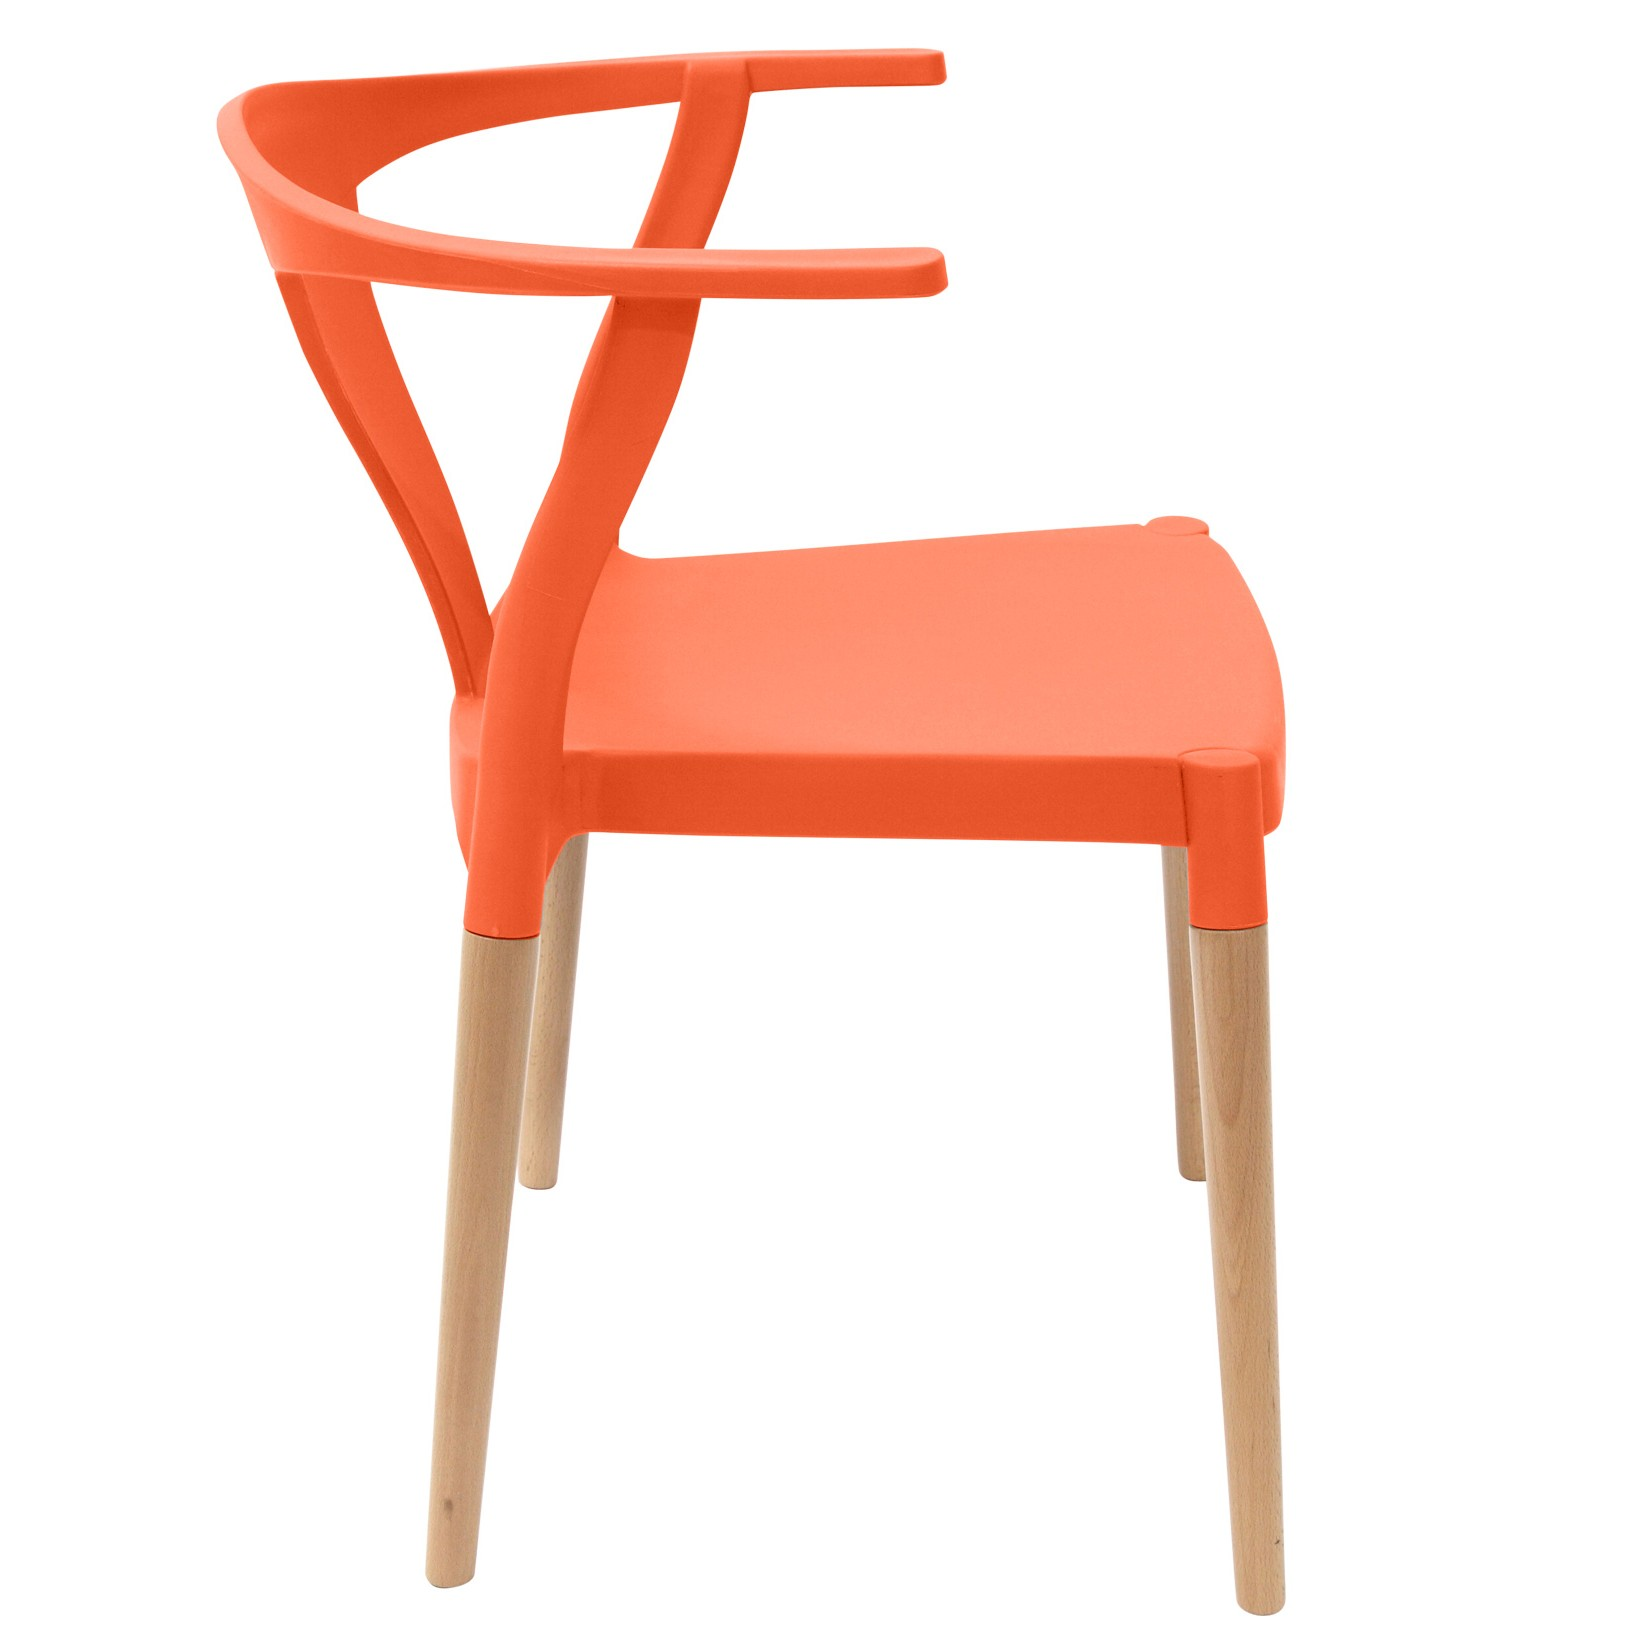 Orange Accent Chair With Wood Arms: Icon Series Orange Modern Accent Dining Arm Chair Beech